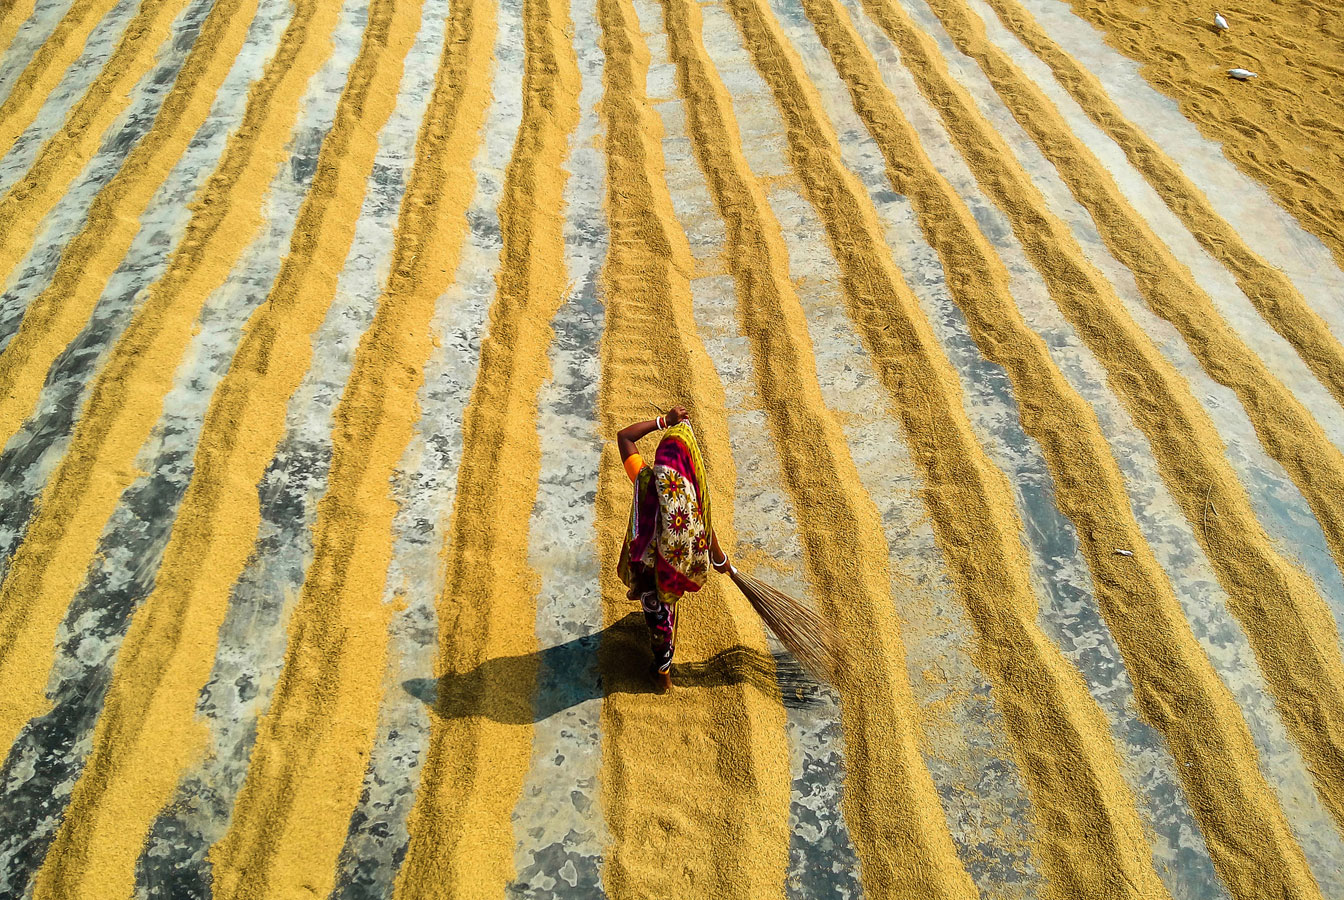 The broom, © Ehsanul Siddiq Aranya, Bangladesh, 1 place in nomination Mobile photography, 35AWARDS Photo Contest